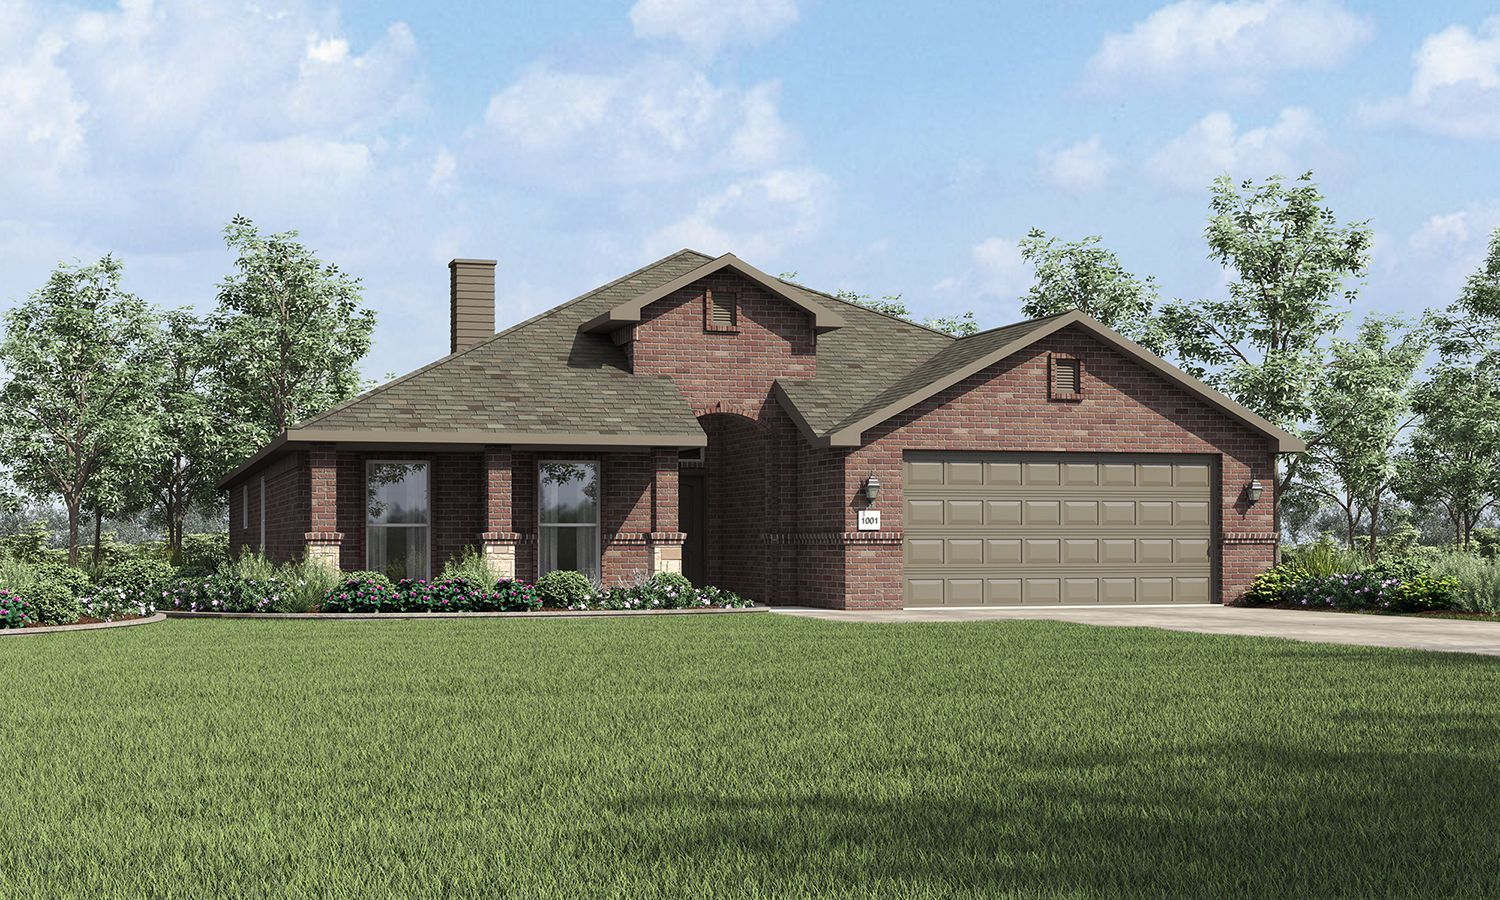 Single Family for Sale at Bella Mia Estates - Sydney 12502 Hudson Ave Lubbock, Texas 79423 United States